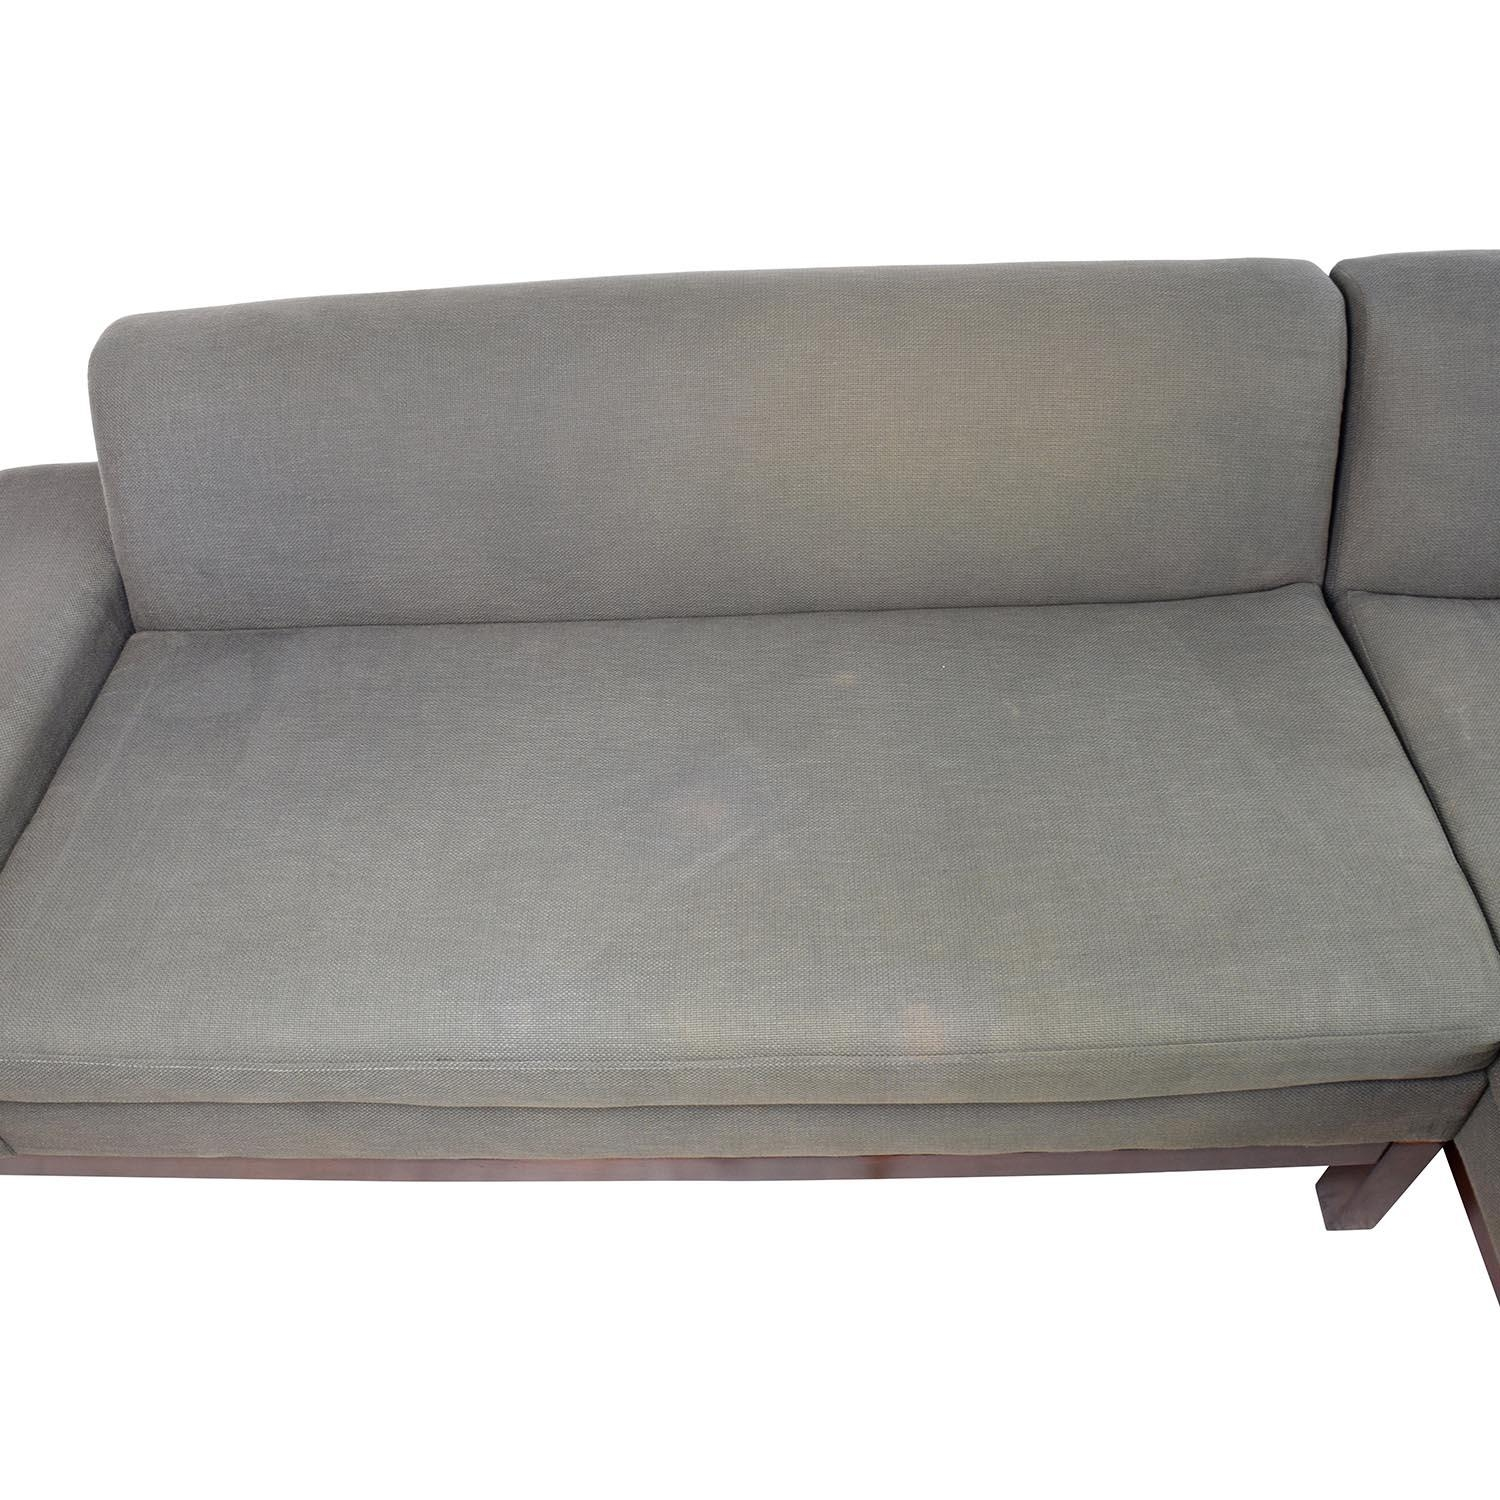 small sectional sofa west elm full grain leather ideas sectionals explore 15 of 20 photos